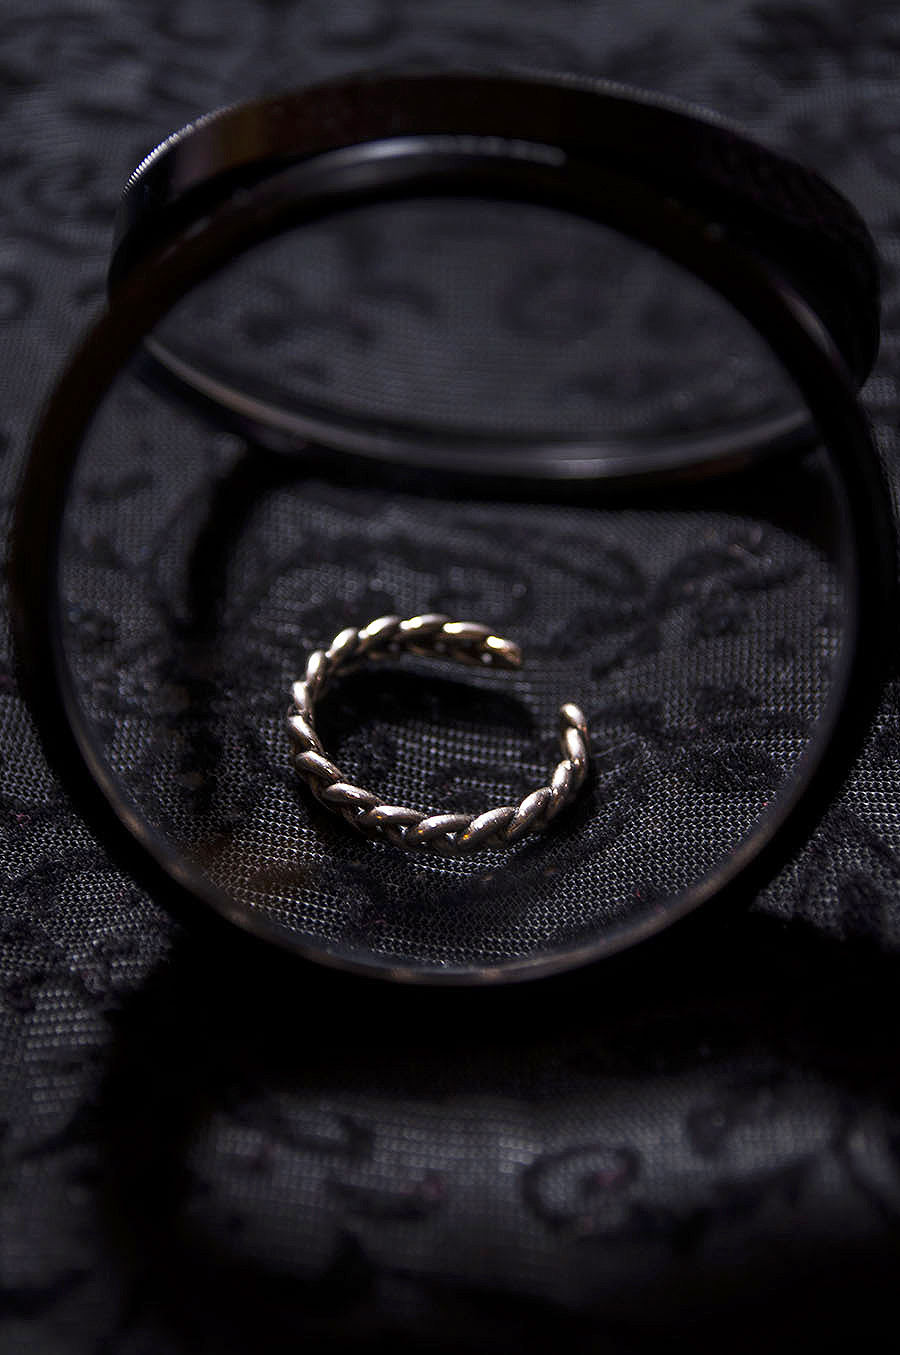 Rebecca_Huang_still_life_photography_dark_velvet_accessories_rings_jewelry_lens_magnifying_reflection_silver_braided_weaved_floral